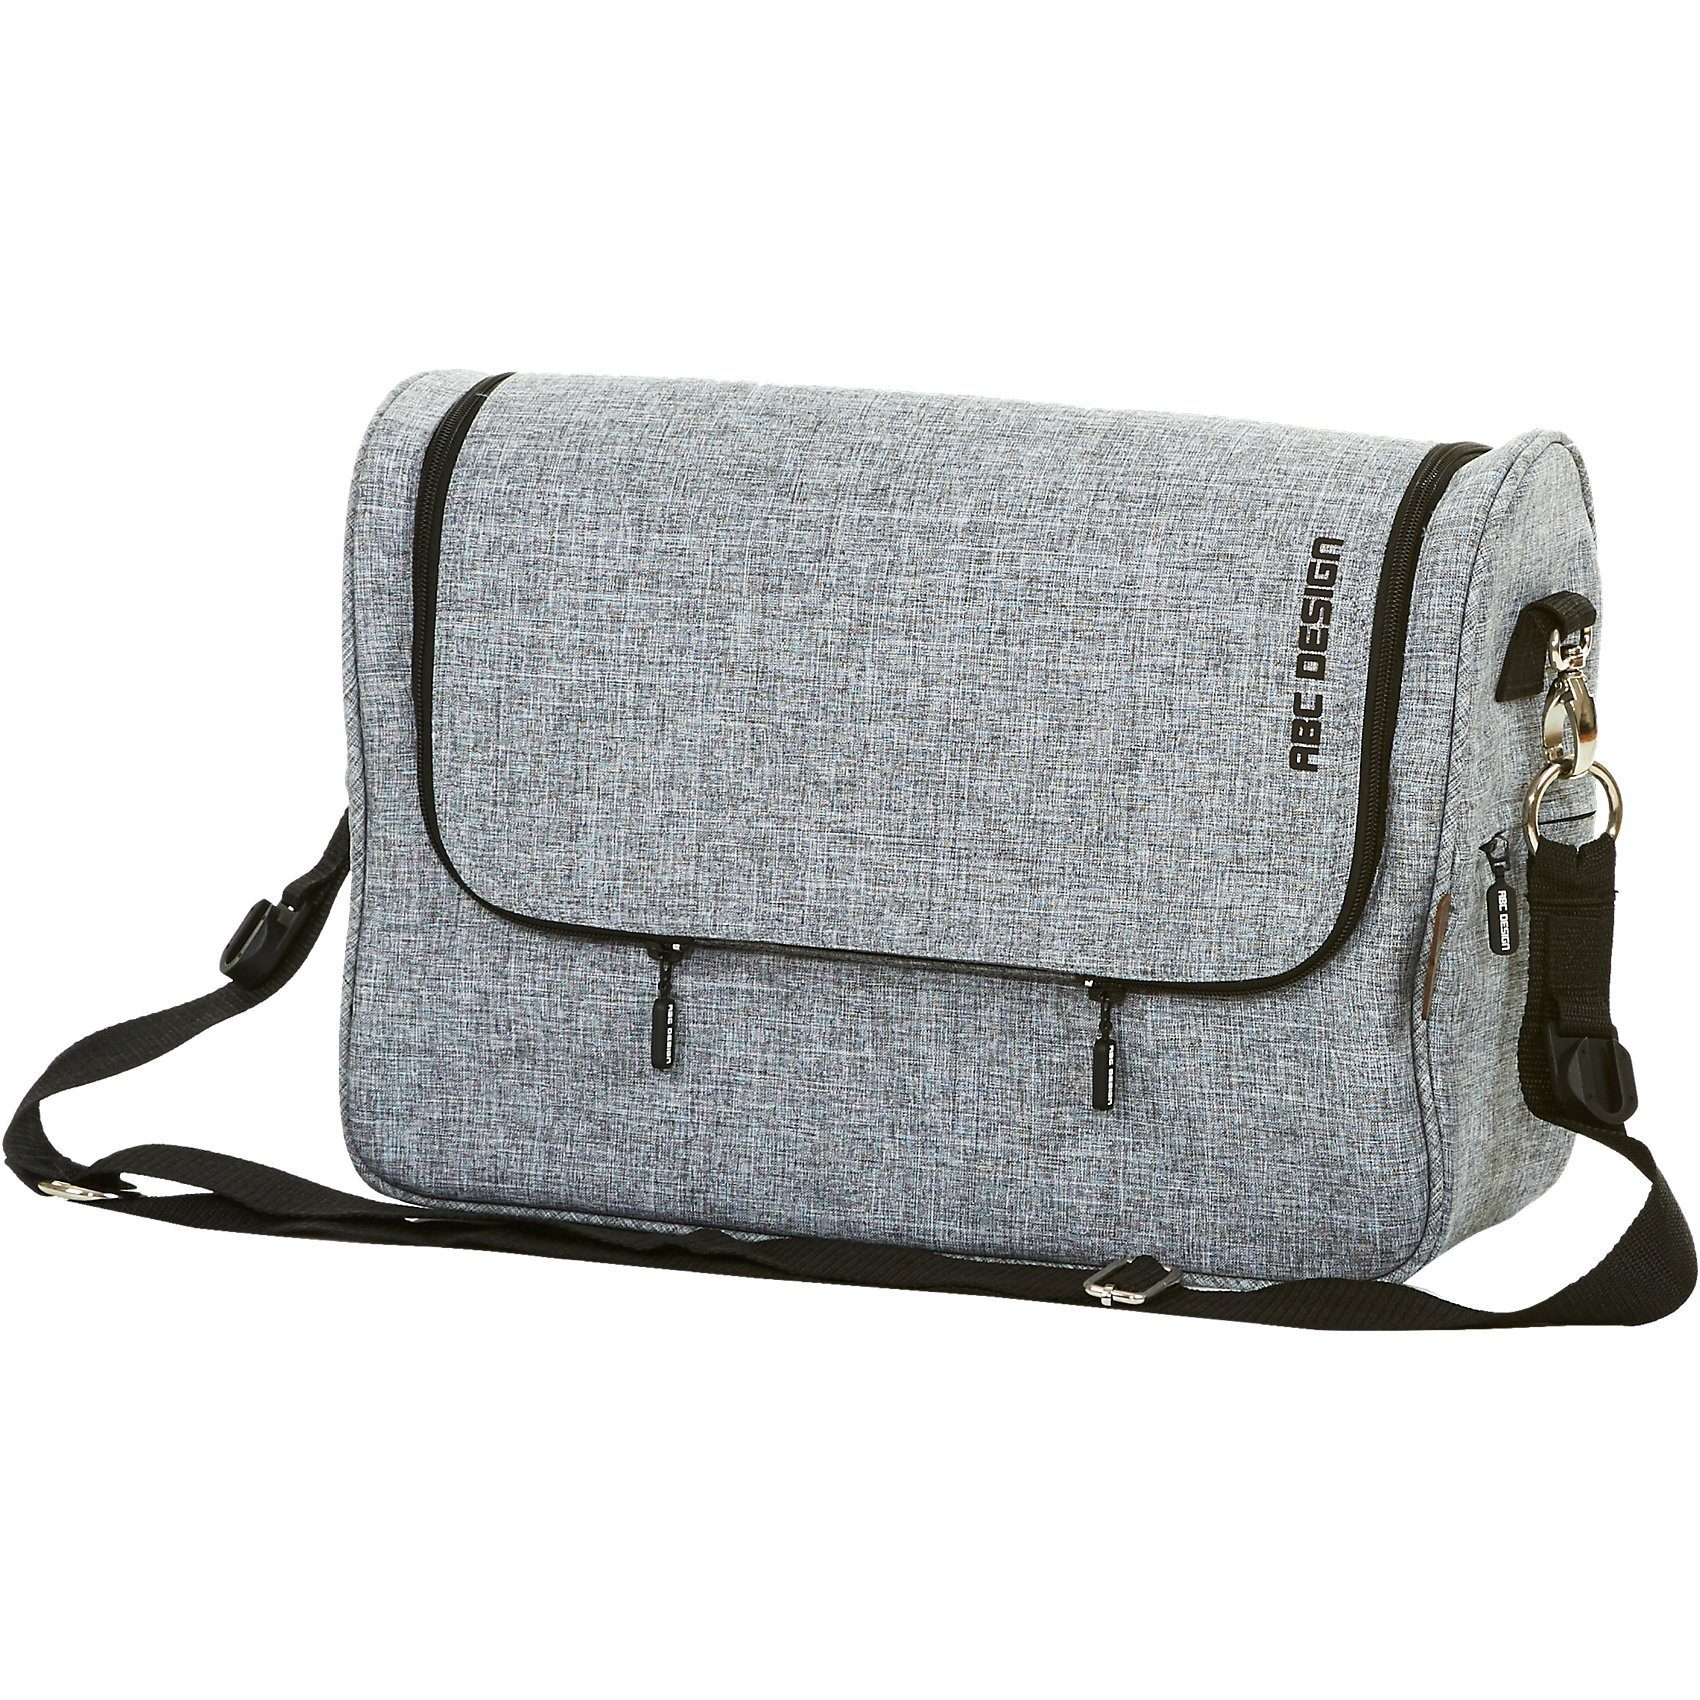 ABC Design Wickeltasche Classic, graphite grey